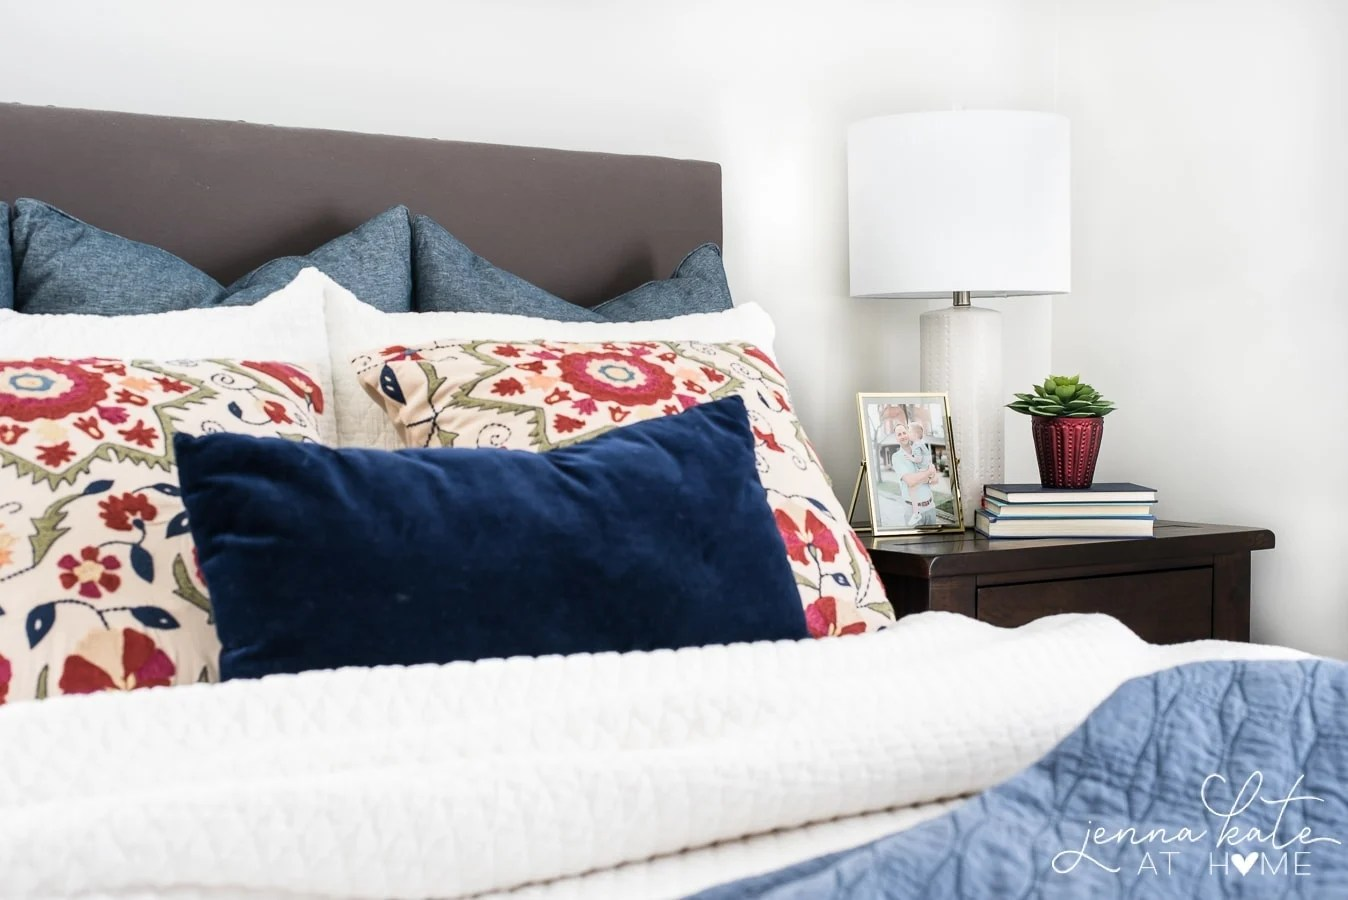 Cozy up your bedroom for fall with floral print pillows on the bed